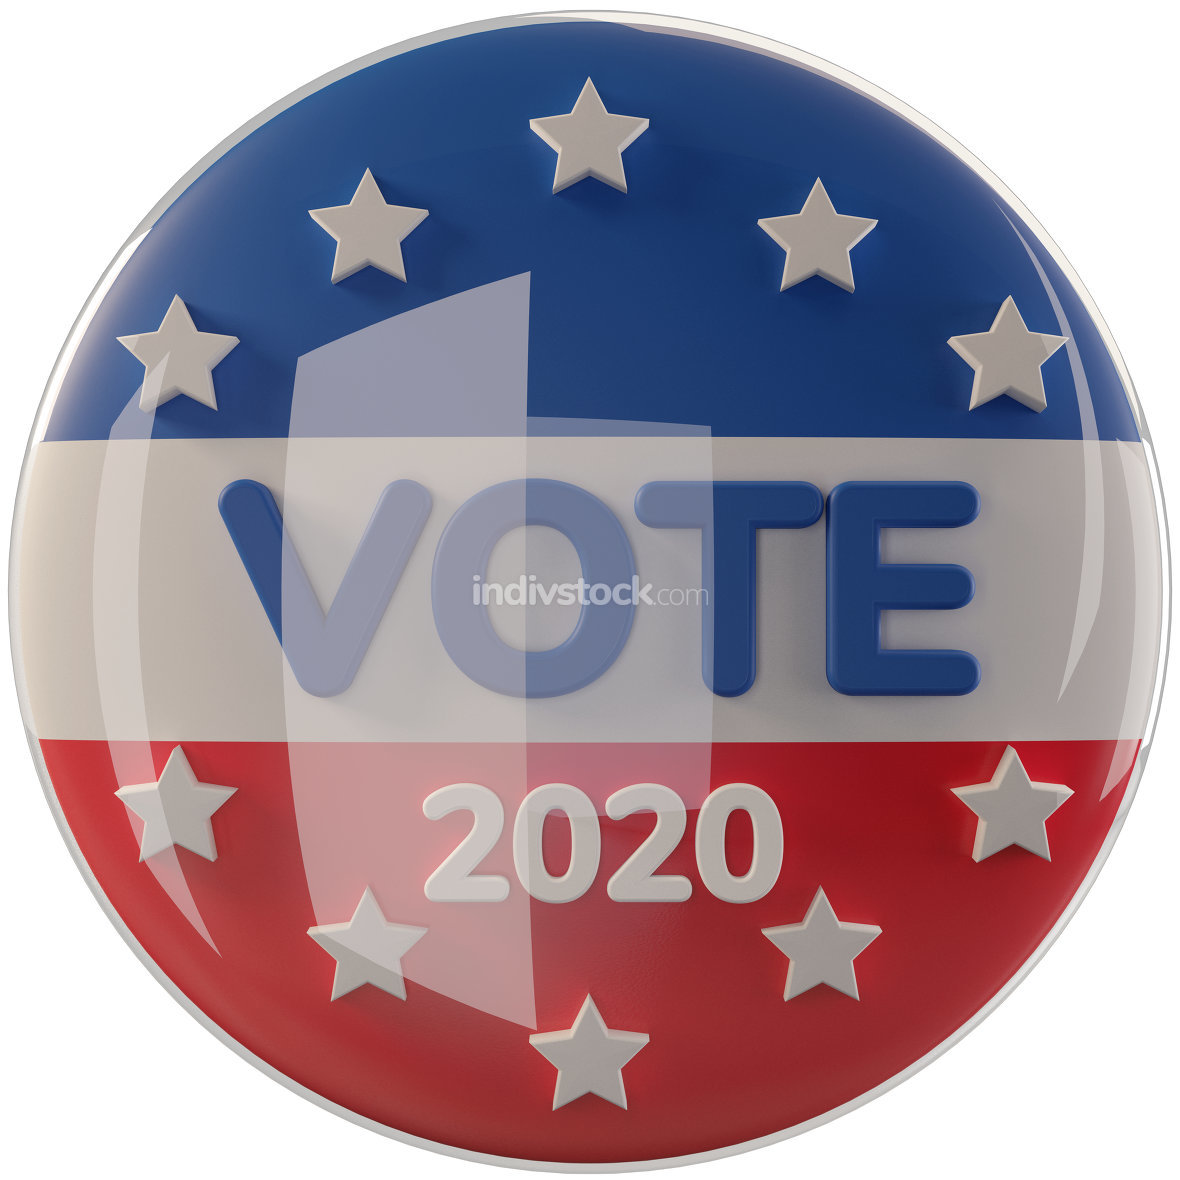 free download: United States of America presidential election 2020 - vote 3d-il